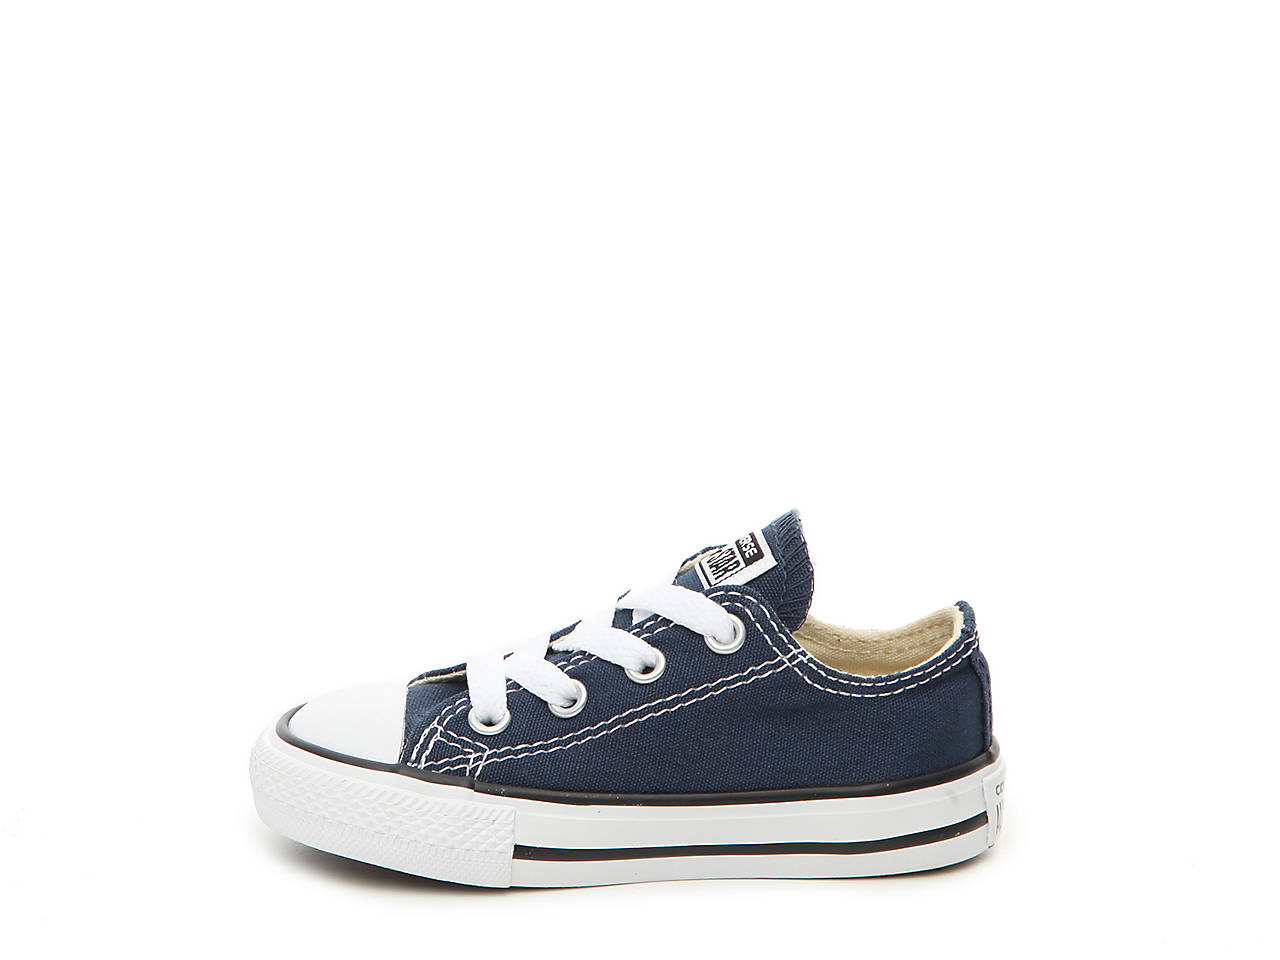 a9911e45a87a21 Converse Chuck Taylor All Star Infant   Toddler Sneaker Kids Shoes